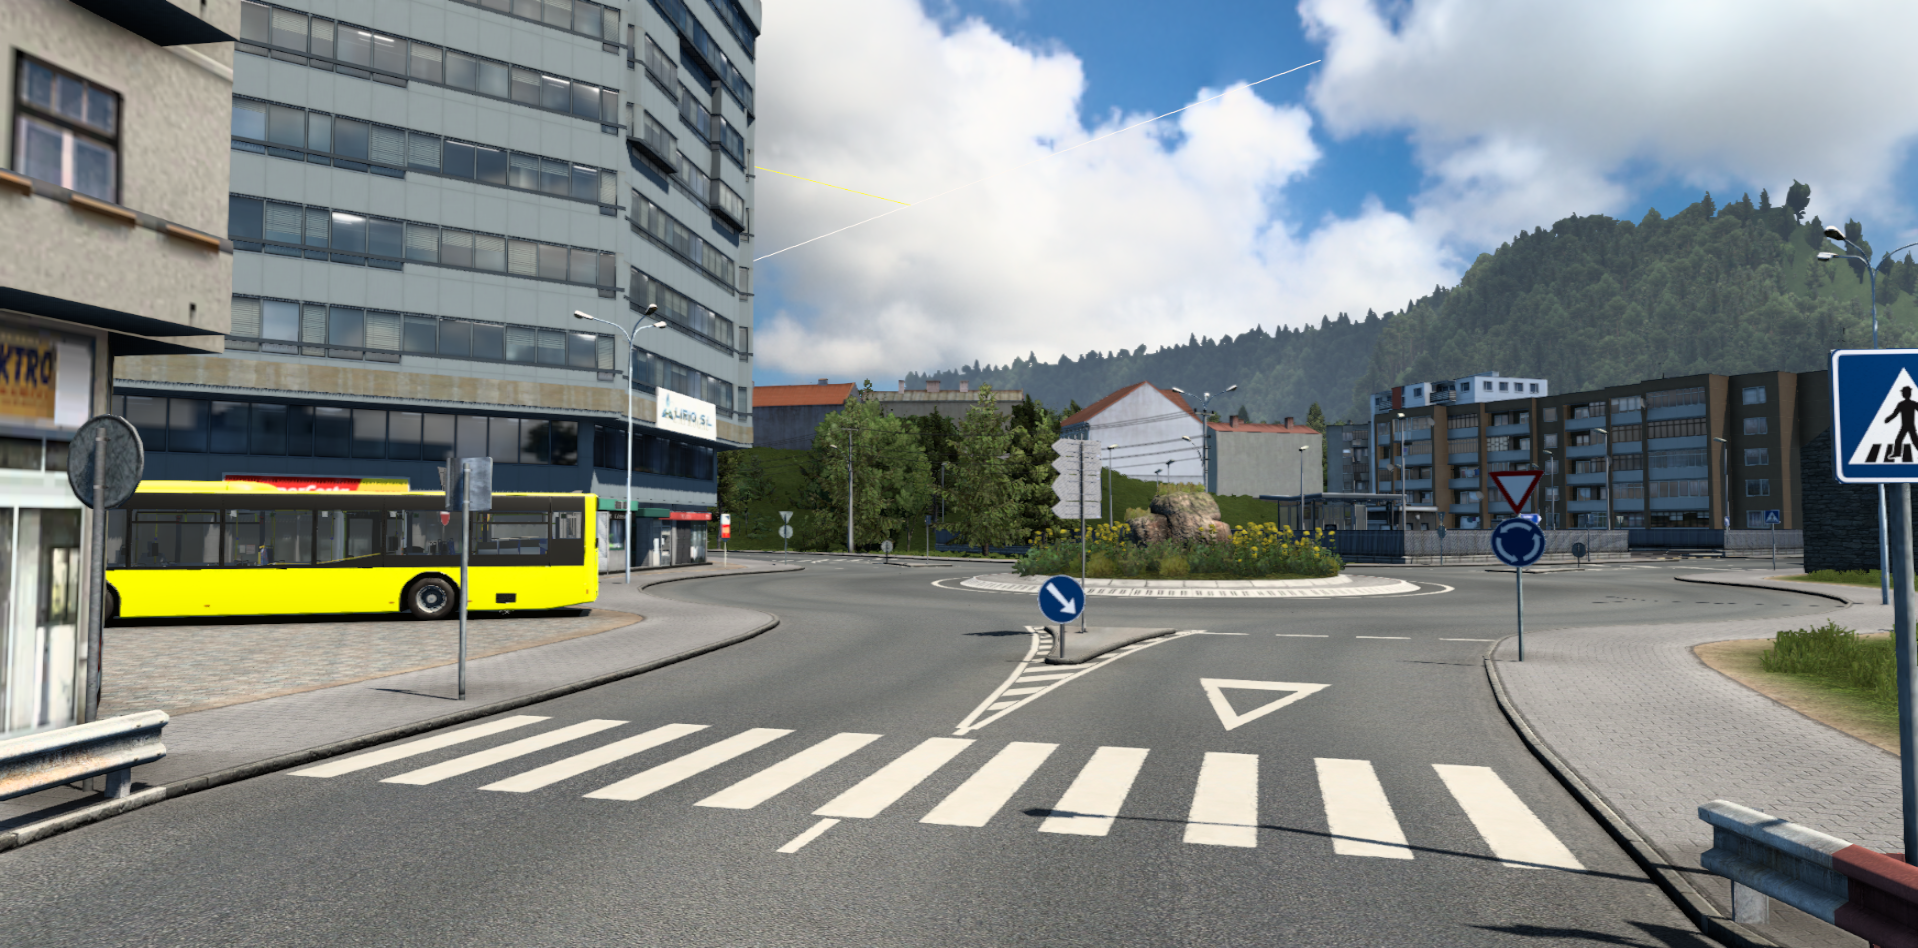 ets2_20211007_202841_00.png